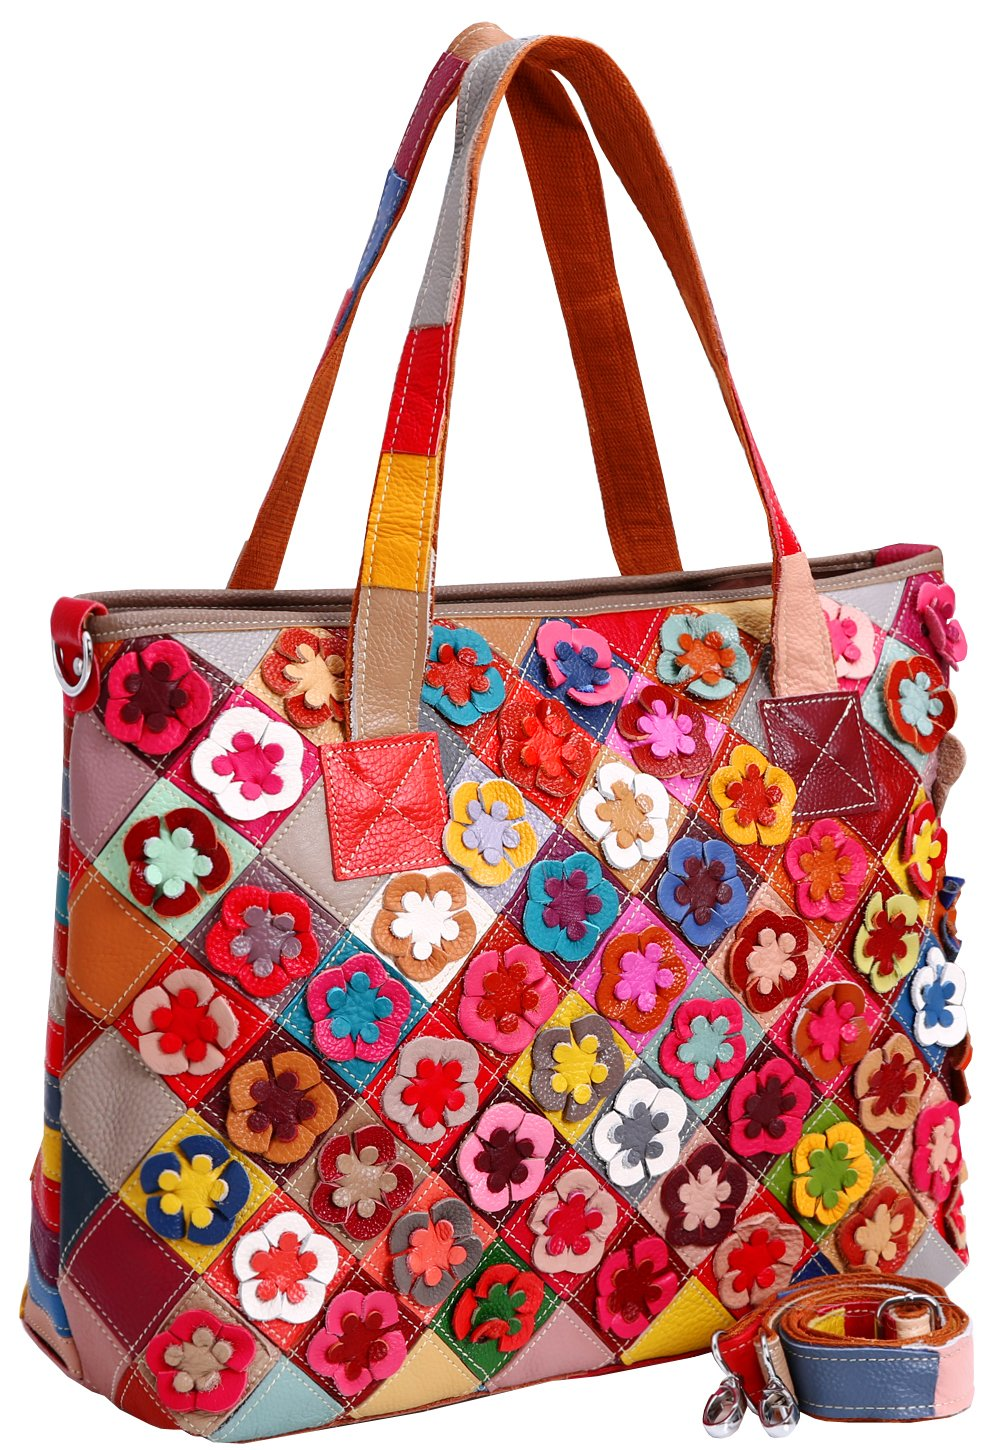 Heshe® Women's Hobo Shoulder Bags Cross Body Tote Handbags Purses with Flower Summer Style (Colorful-2B4039)